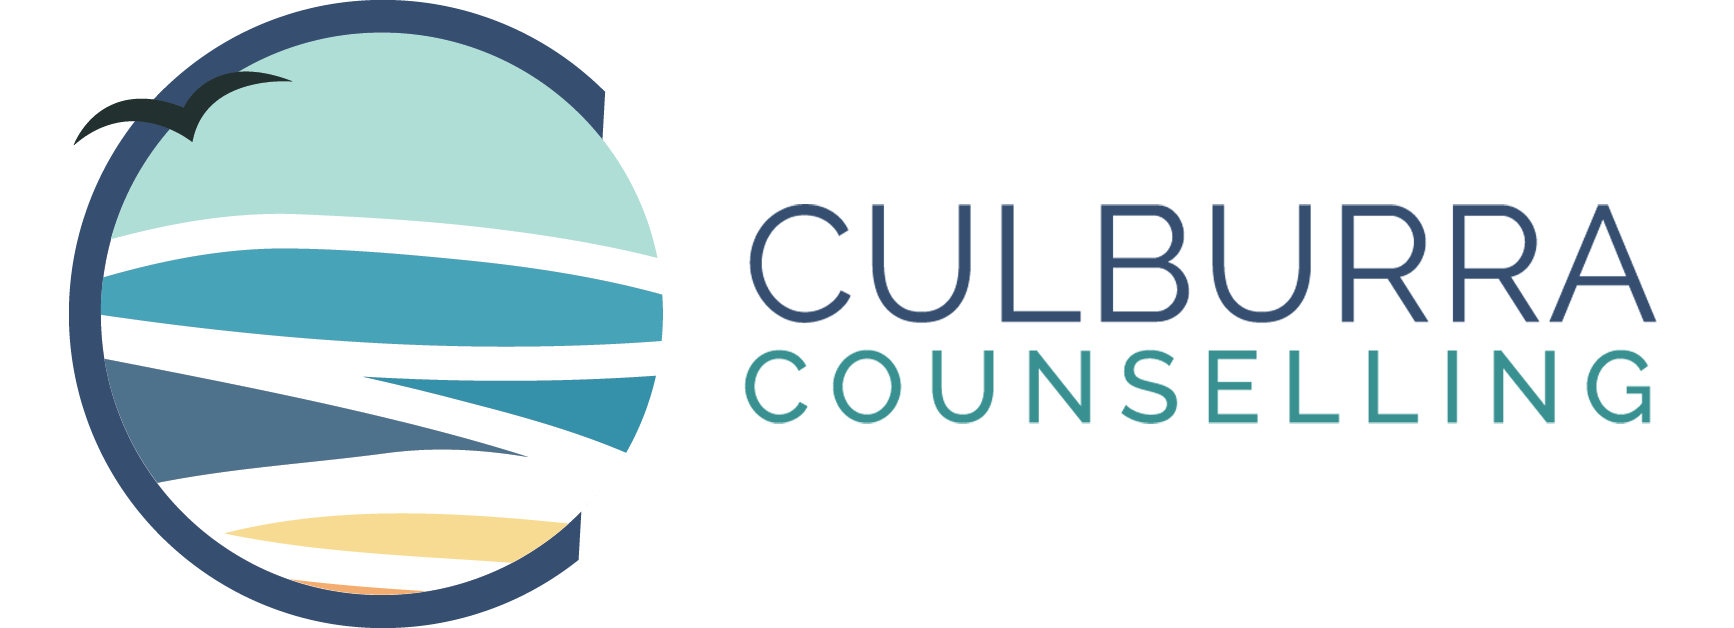 Culburra Counselling